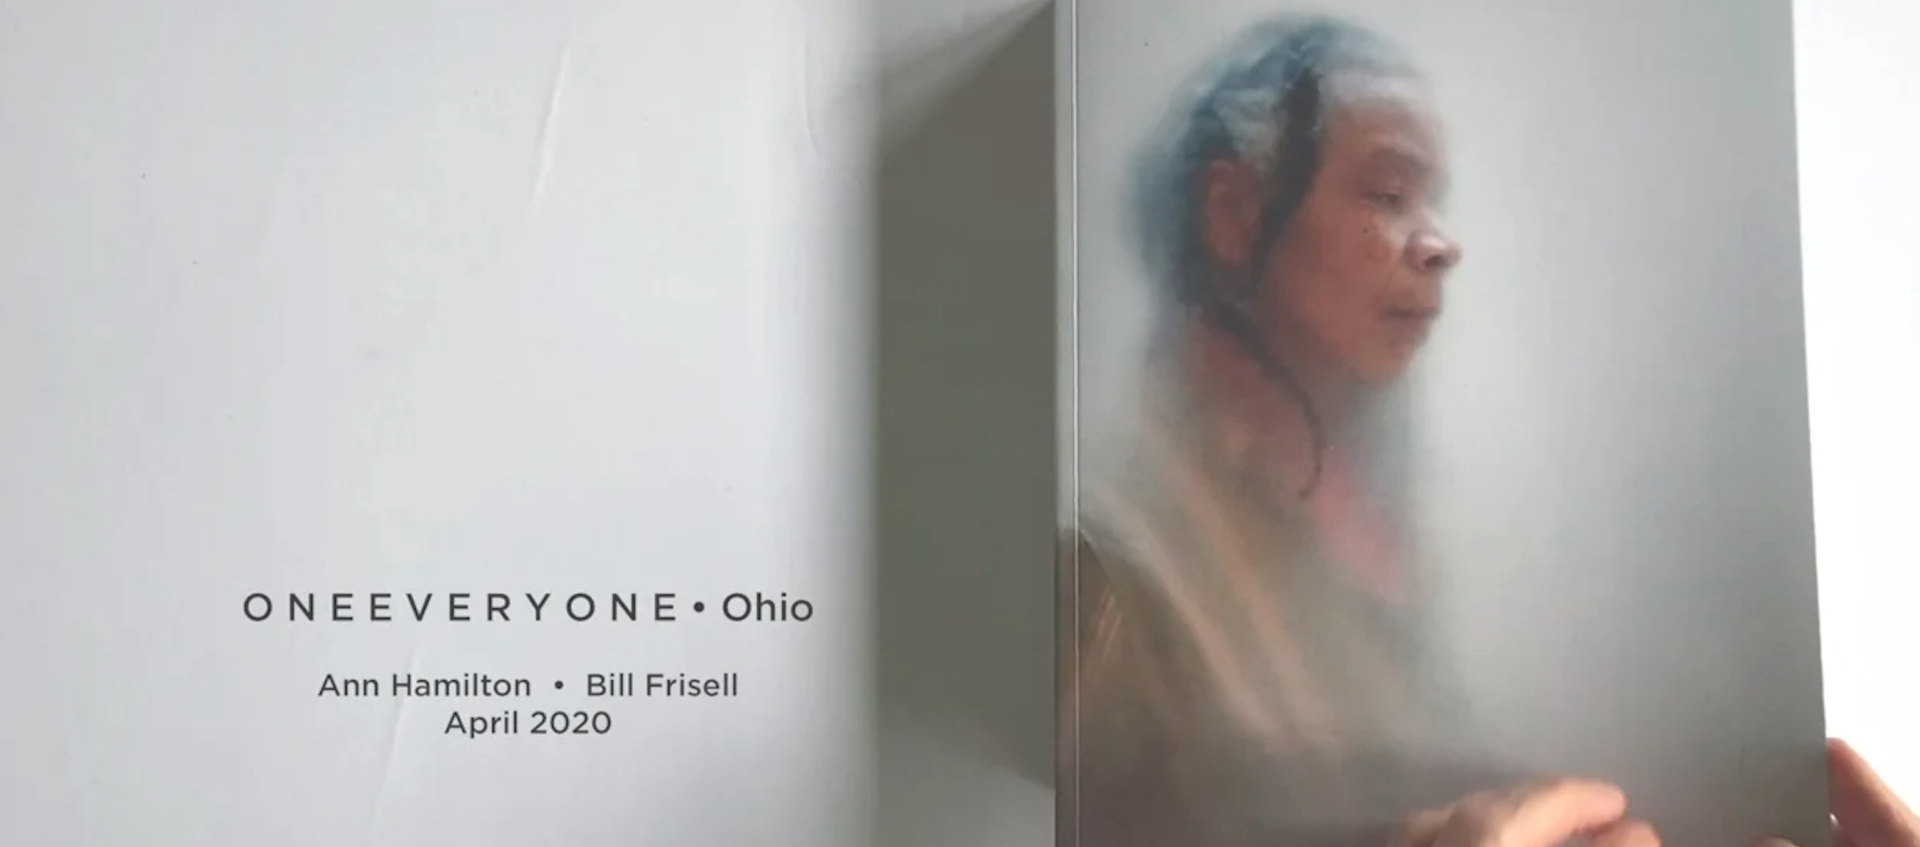 Opening image from the video of artist Ann Hamilton's ONEEVERYONE book. Dancer Bebe Miller is seen on the cover.